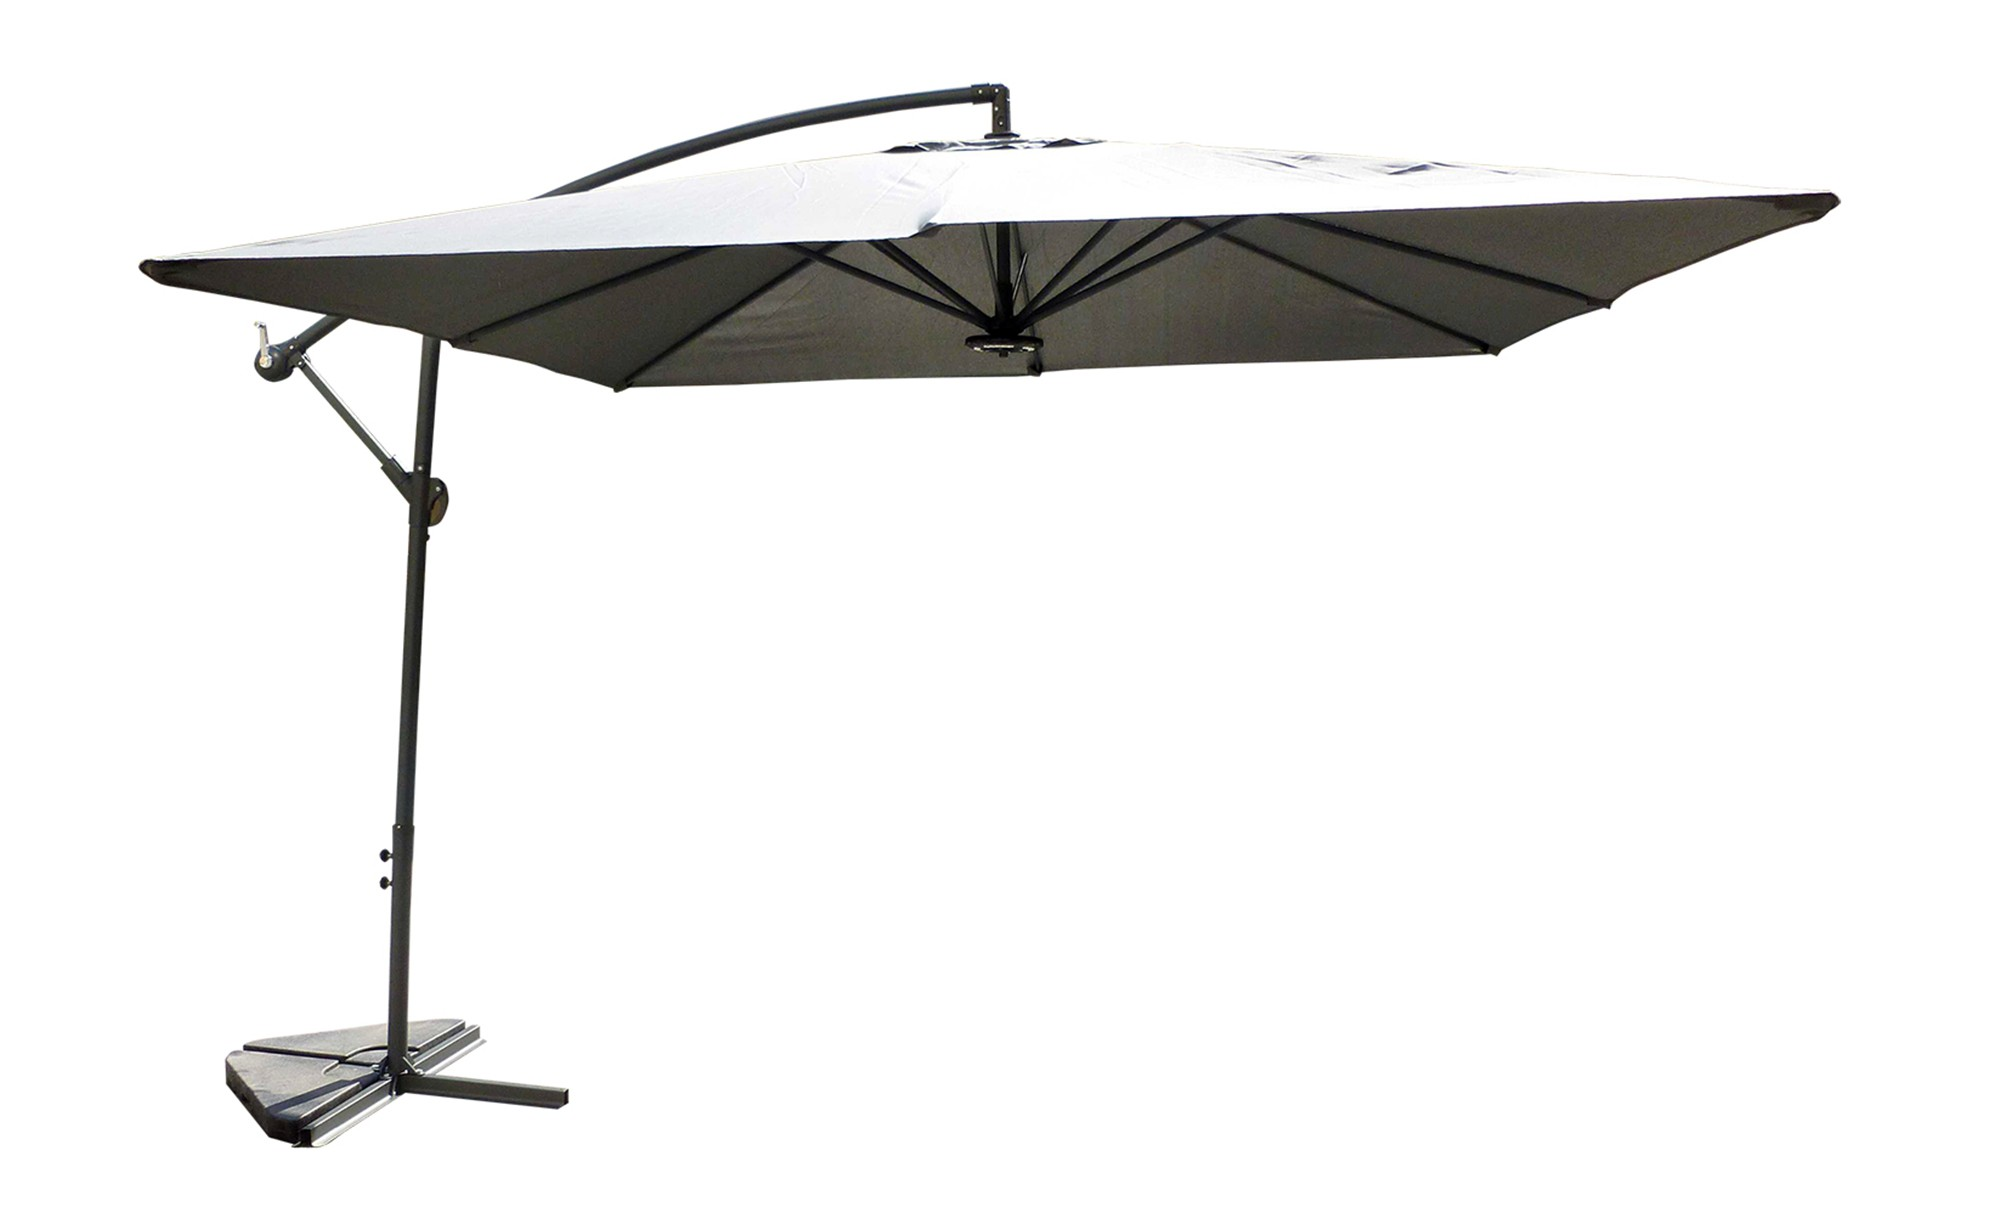 hendaye gris parasol led d port 3x3m parasols. Black Bedroom Furniture Sets. Home Design Ideas